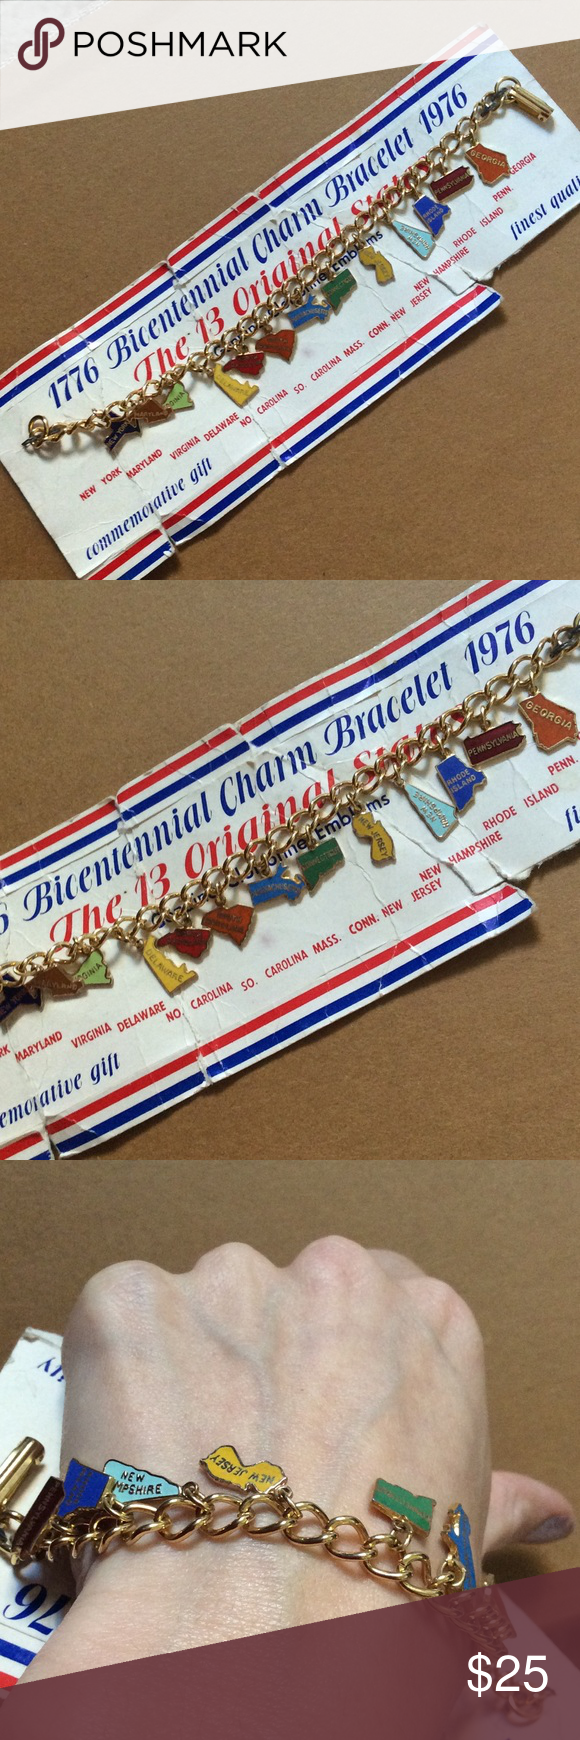 Bicentennial Historical State Charm Bracelet Rainbow colors. The 13 original states. United States of America. American pride. New York Maryland Virginia Delaware North Carolina South Carolina Massachusetts Connecticut New Jersey New Hampshire Rhode Island Pennsylvania in Georgia. Golden tone chain. Shapes. Commemorative gift. Collectible. Genuine cloisonné emblems liberty and justice for all. Vintage Jewelry Bracelets